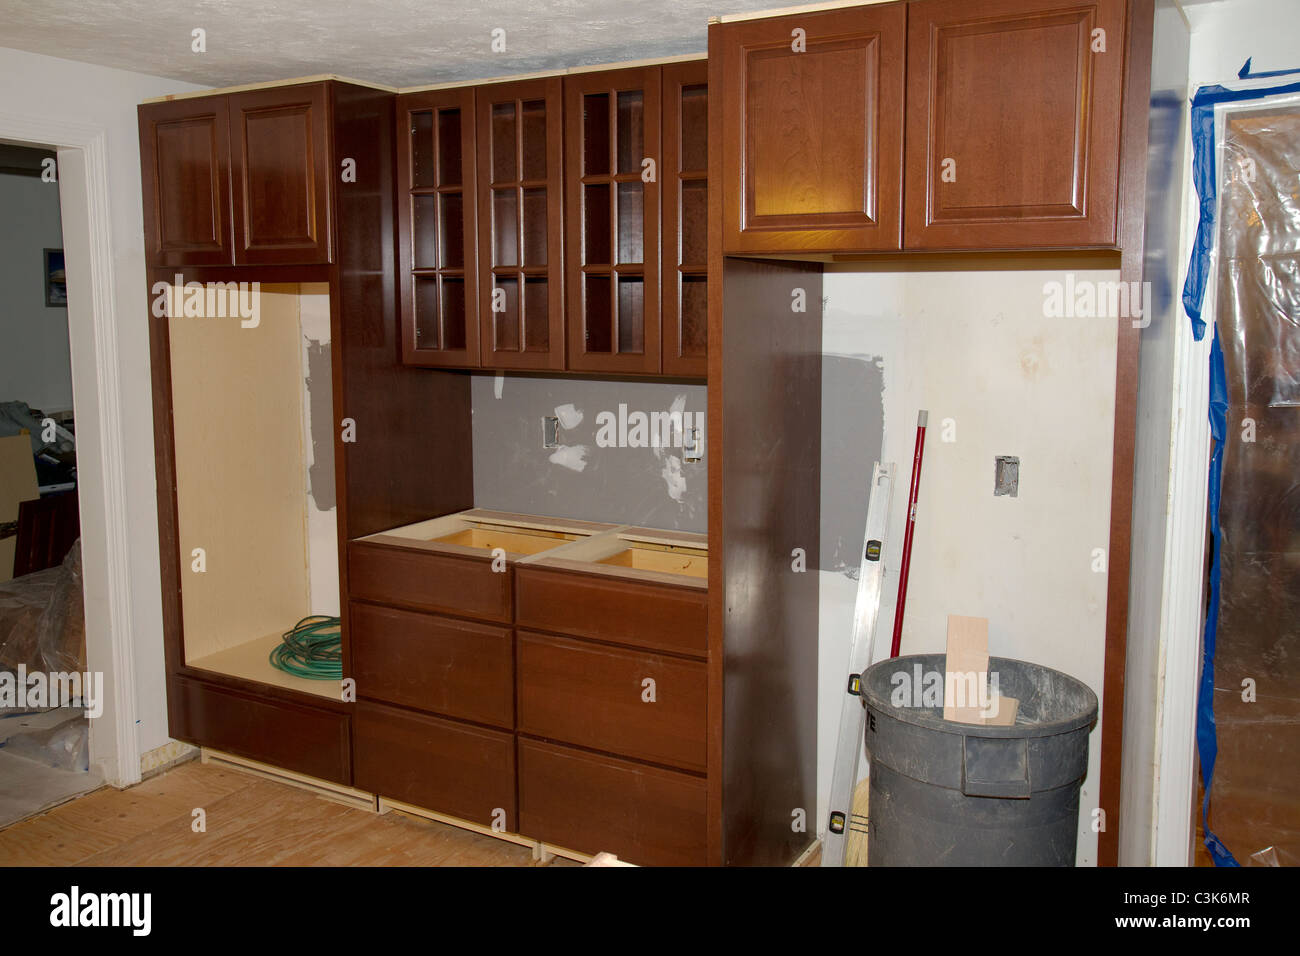 Cabinets Remodeling 1960 S Style American Home Kitchen During Remodeling New Cherry